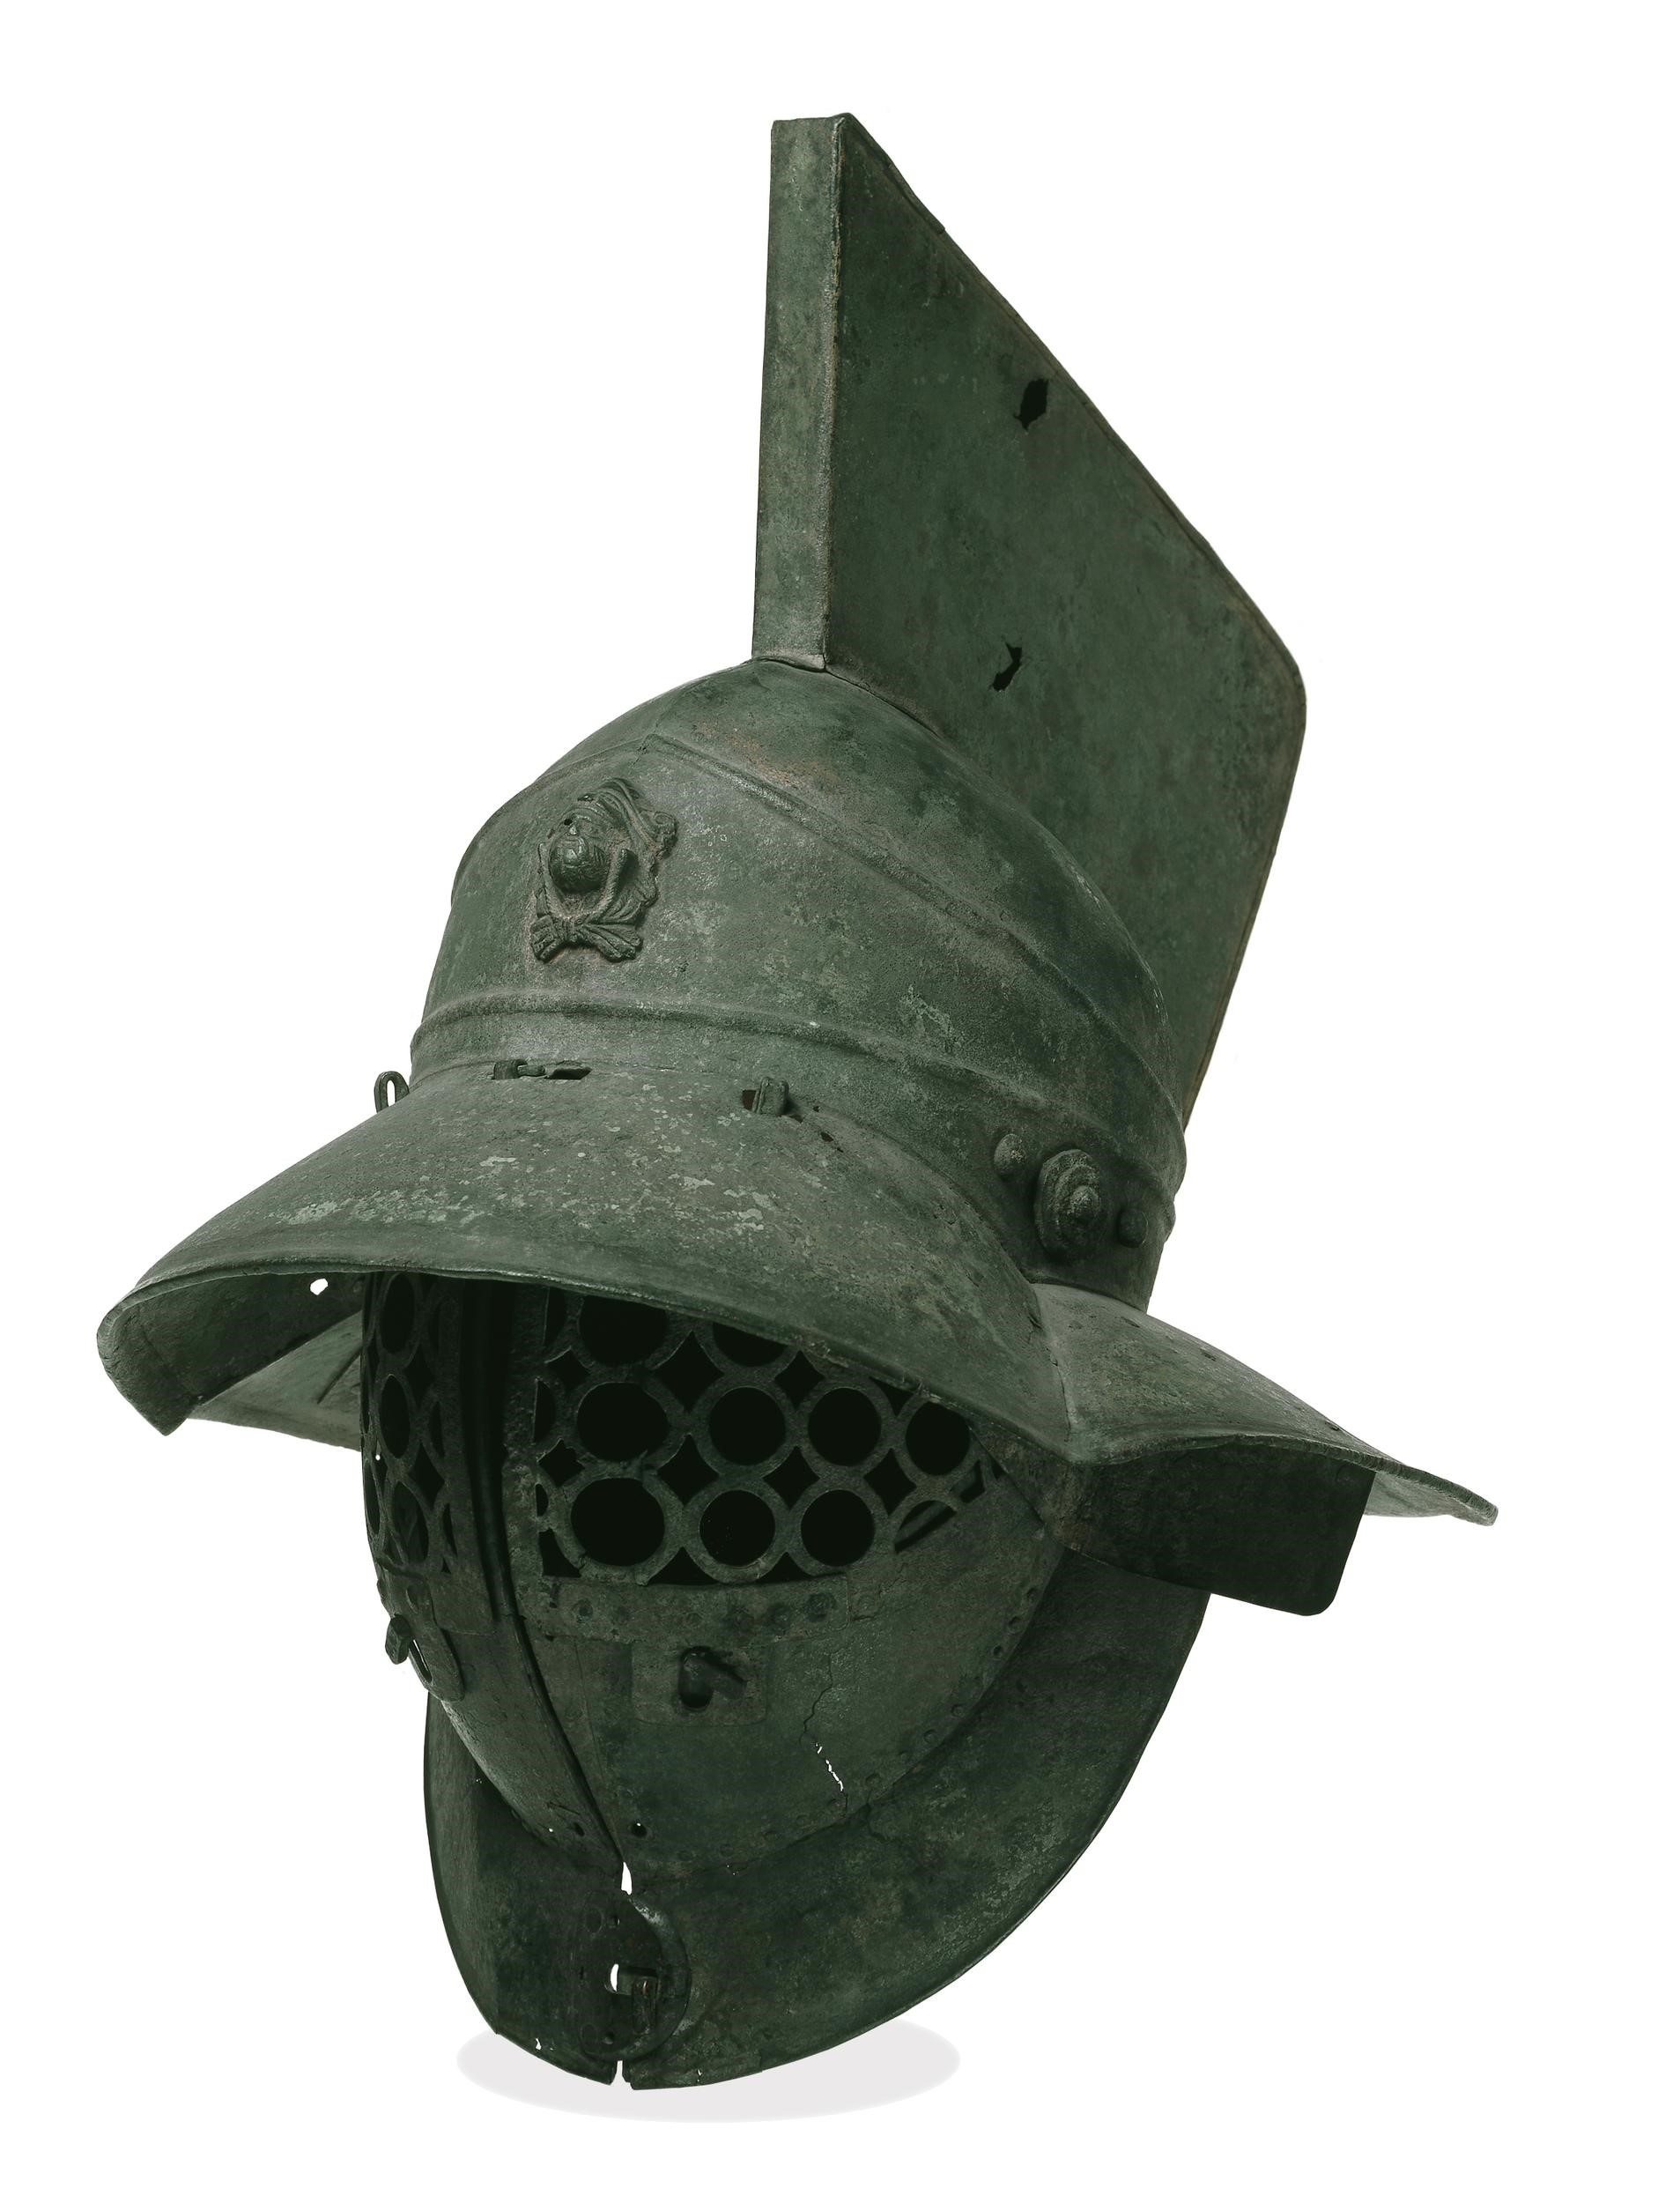 Bronze helmet with a grille of linked circles to protect the face, and a broad brim to protect the back and sides of the head. At the front of the helmet is a medallion of Hercules.